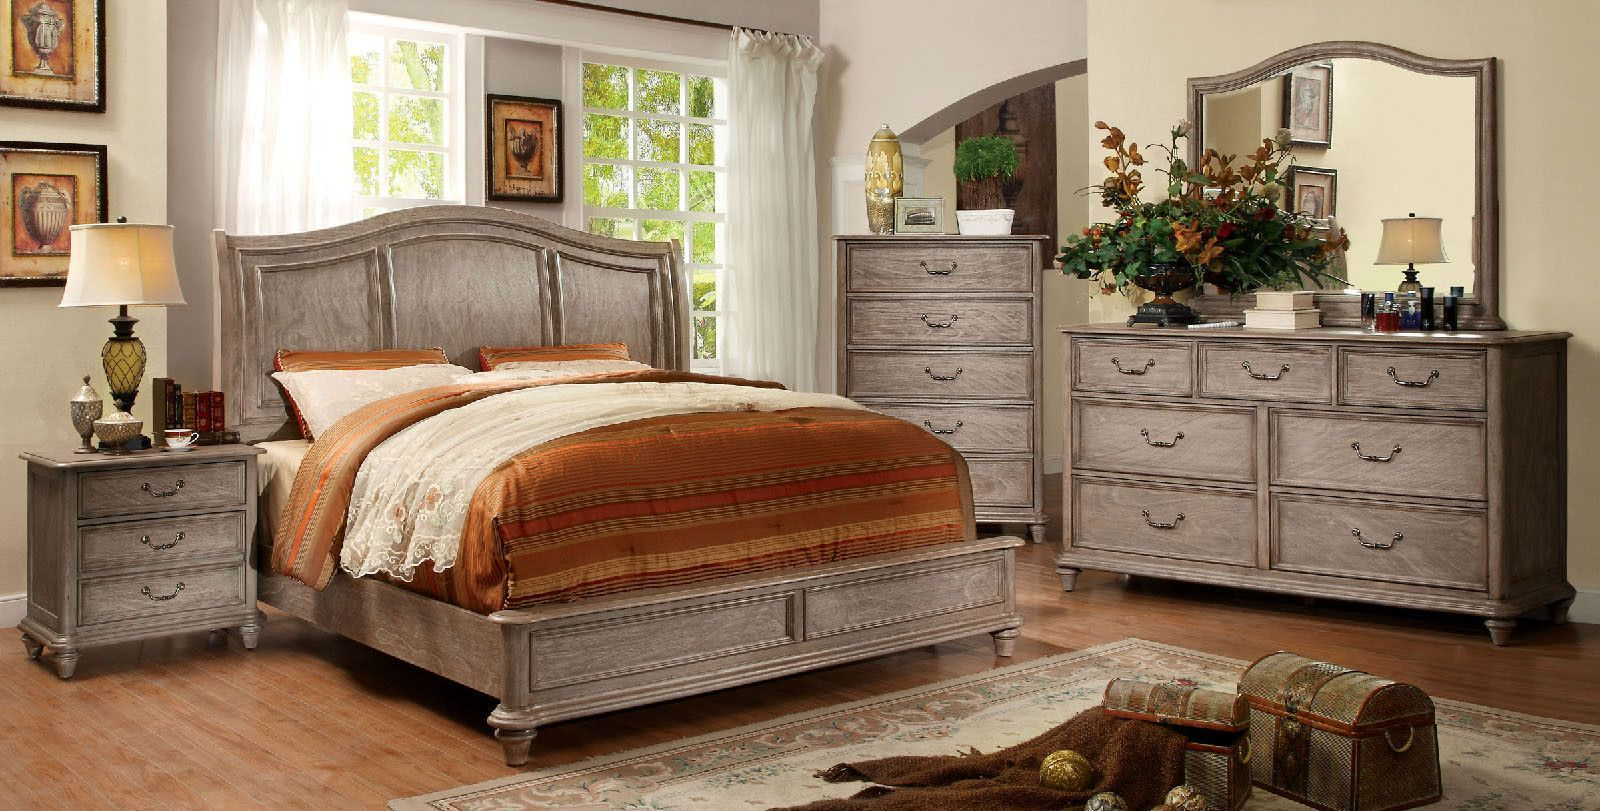 California king bed belgrade cmcm products pinterest